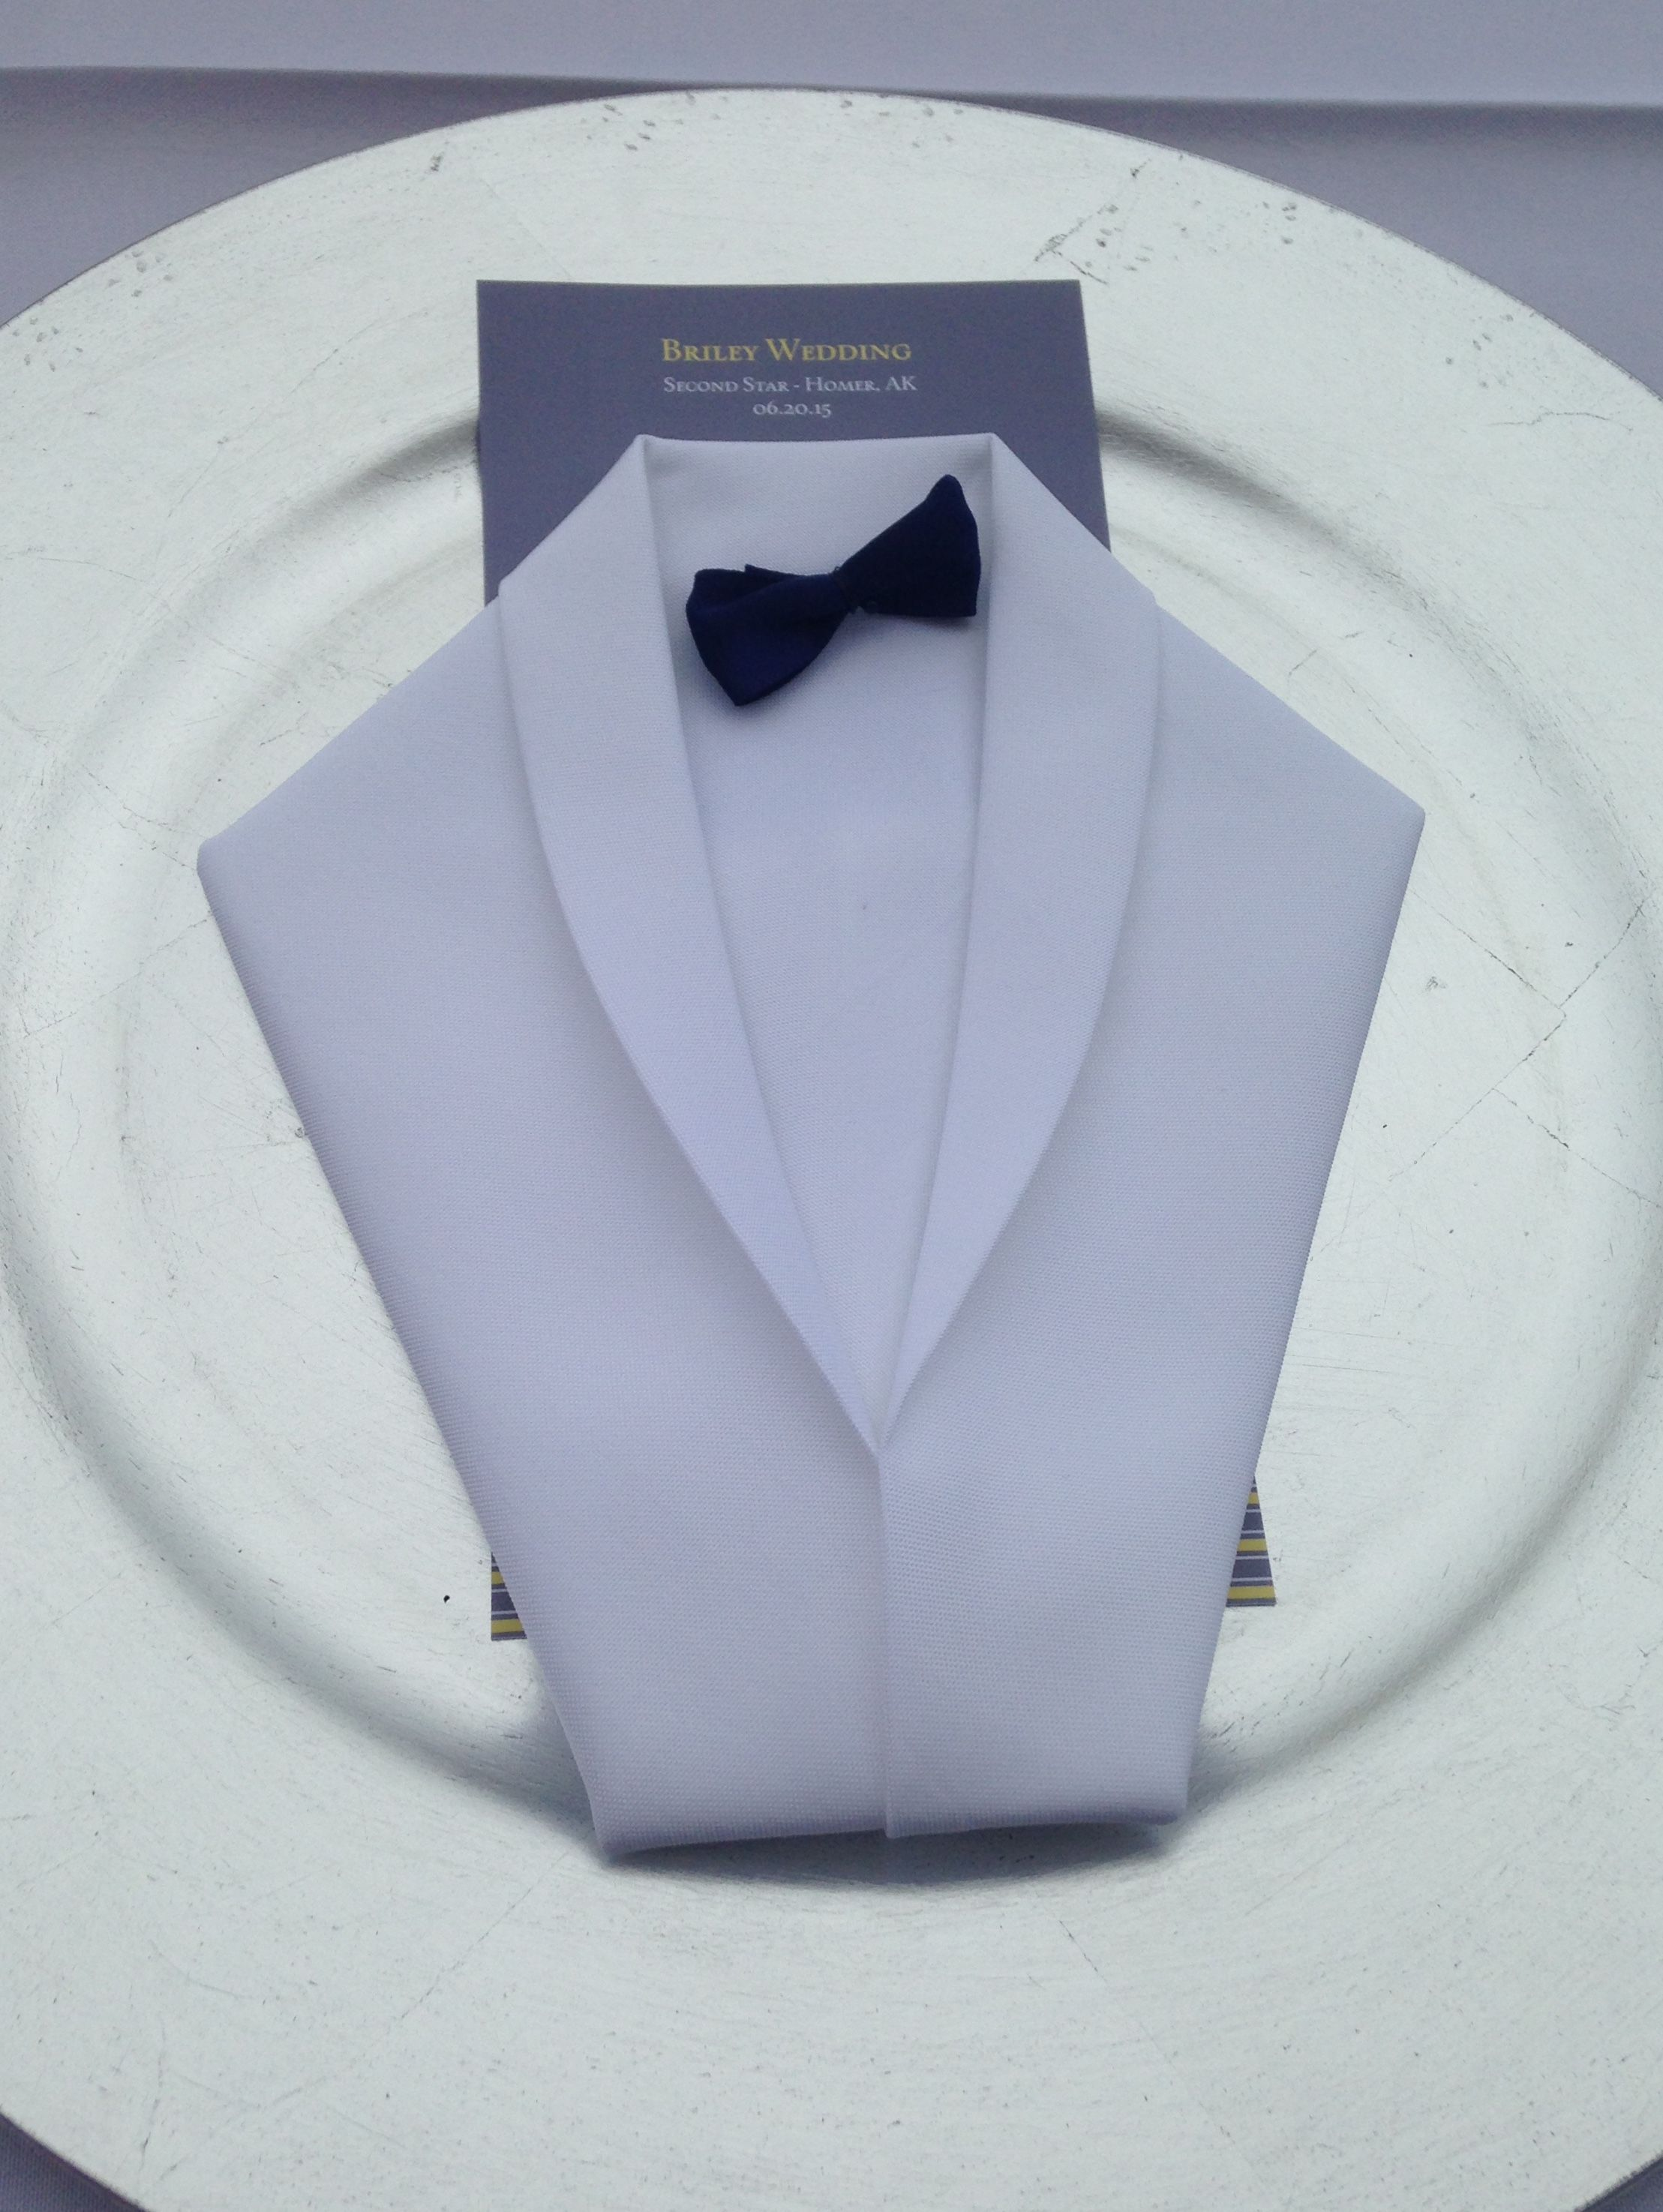 Pliage De Serviette Smoking Tuxedo Napkin Fold Is Perfect For That Smart And Fancy Look